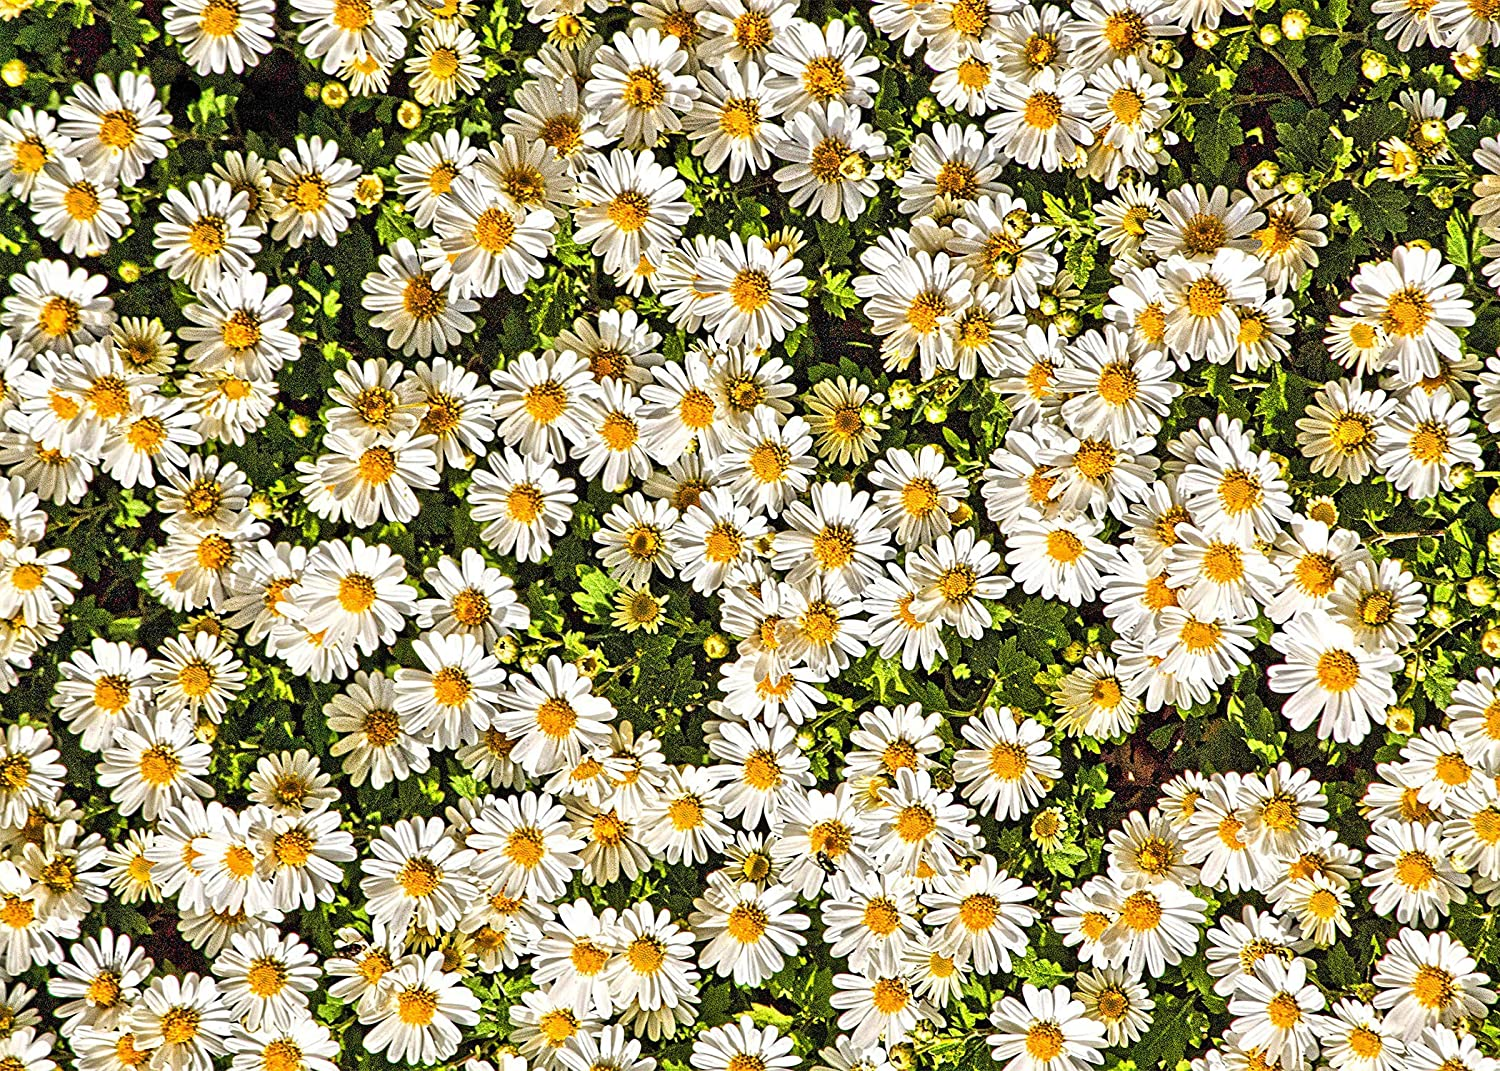 10x8ft Vinyl Beautiful Flower Background White Daisy Background for Childrens Birthday Party Wedding Travel Photography Background Spring Photography Background LYZY0475 for Party Decoration Birthday